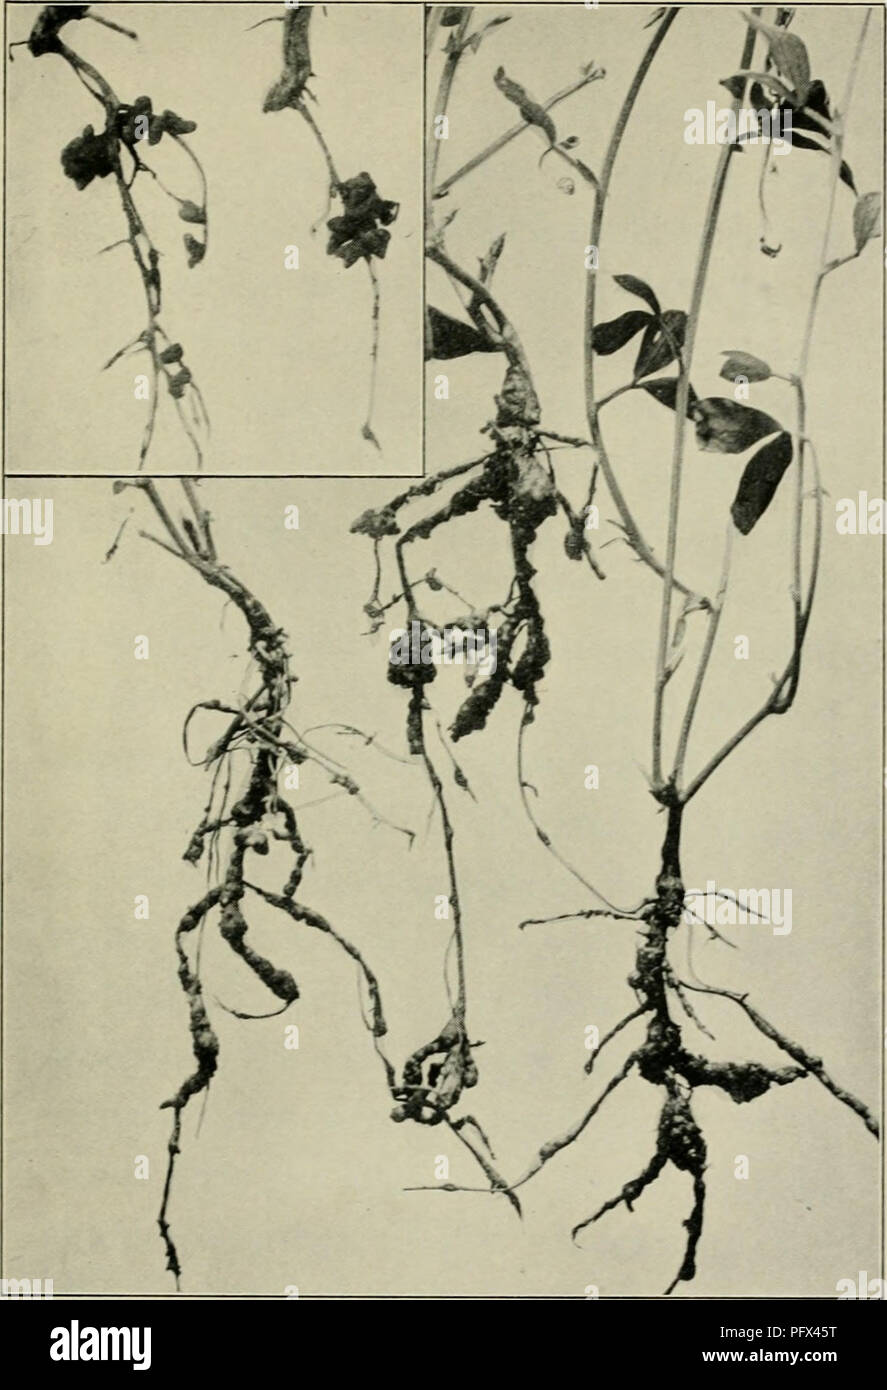 hight resolution of  the culture and diseases of the sweet pea figs i8 19 root knot of sweet peas a root trouble which may be mistaken for the true legume root nodules